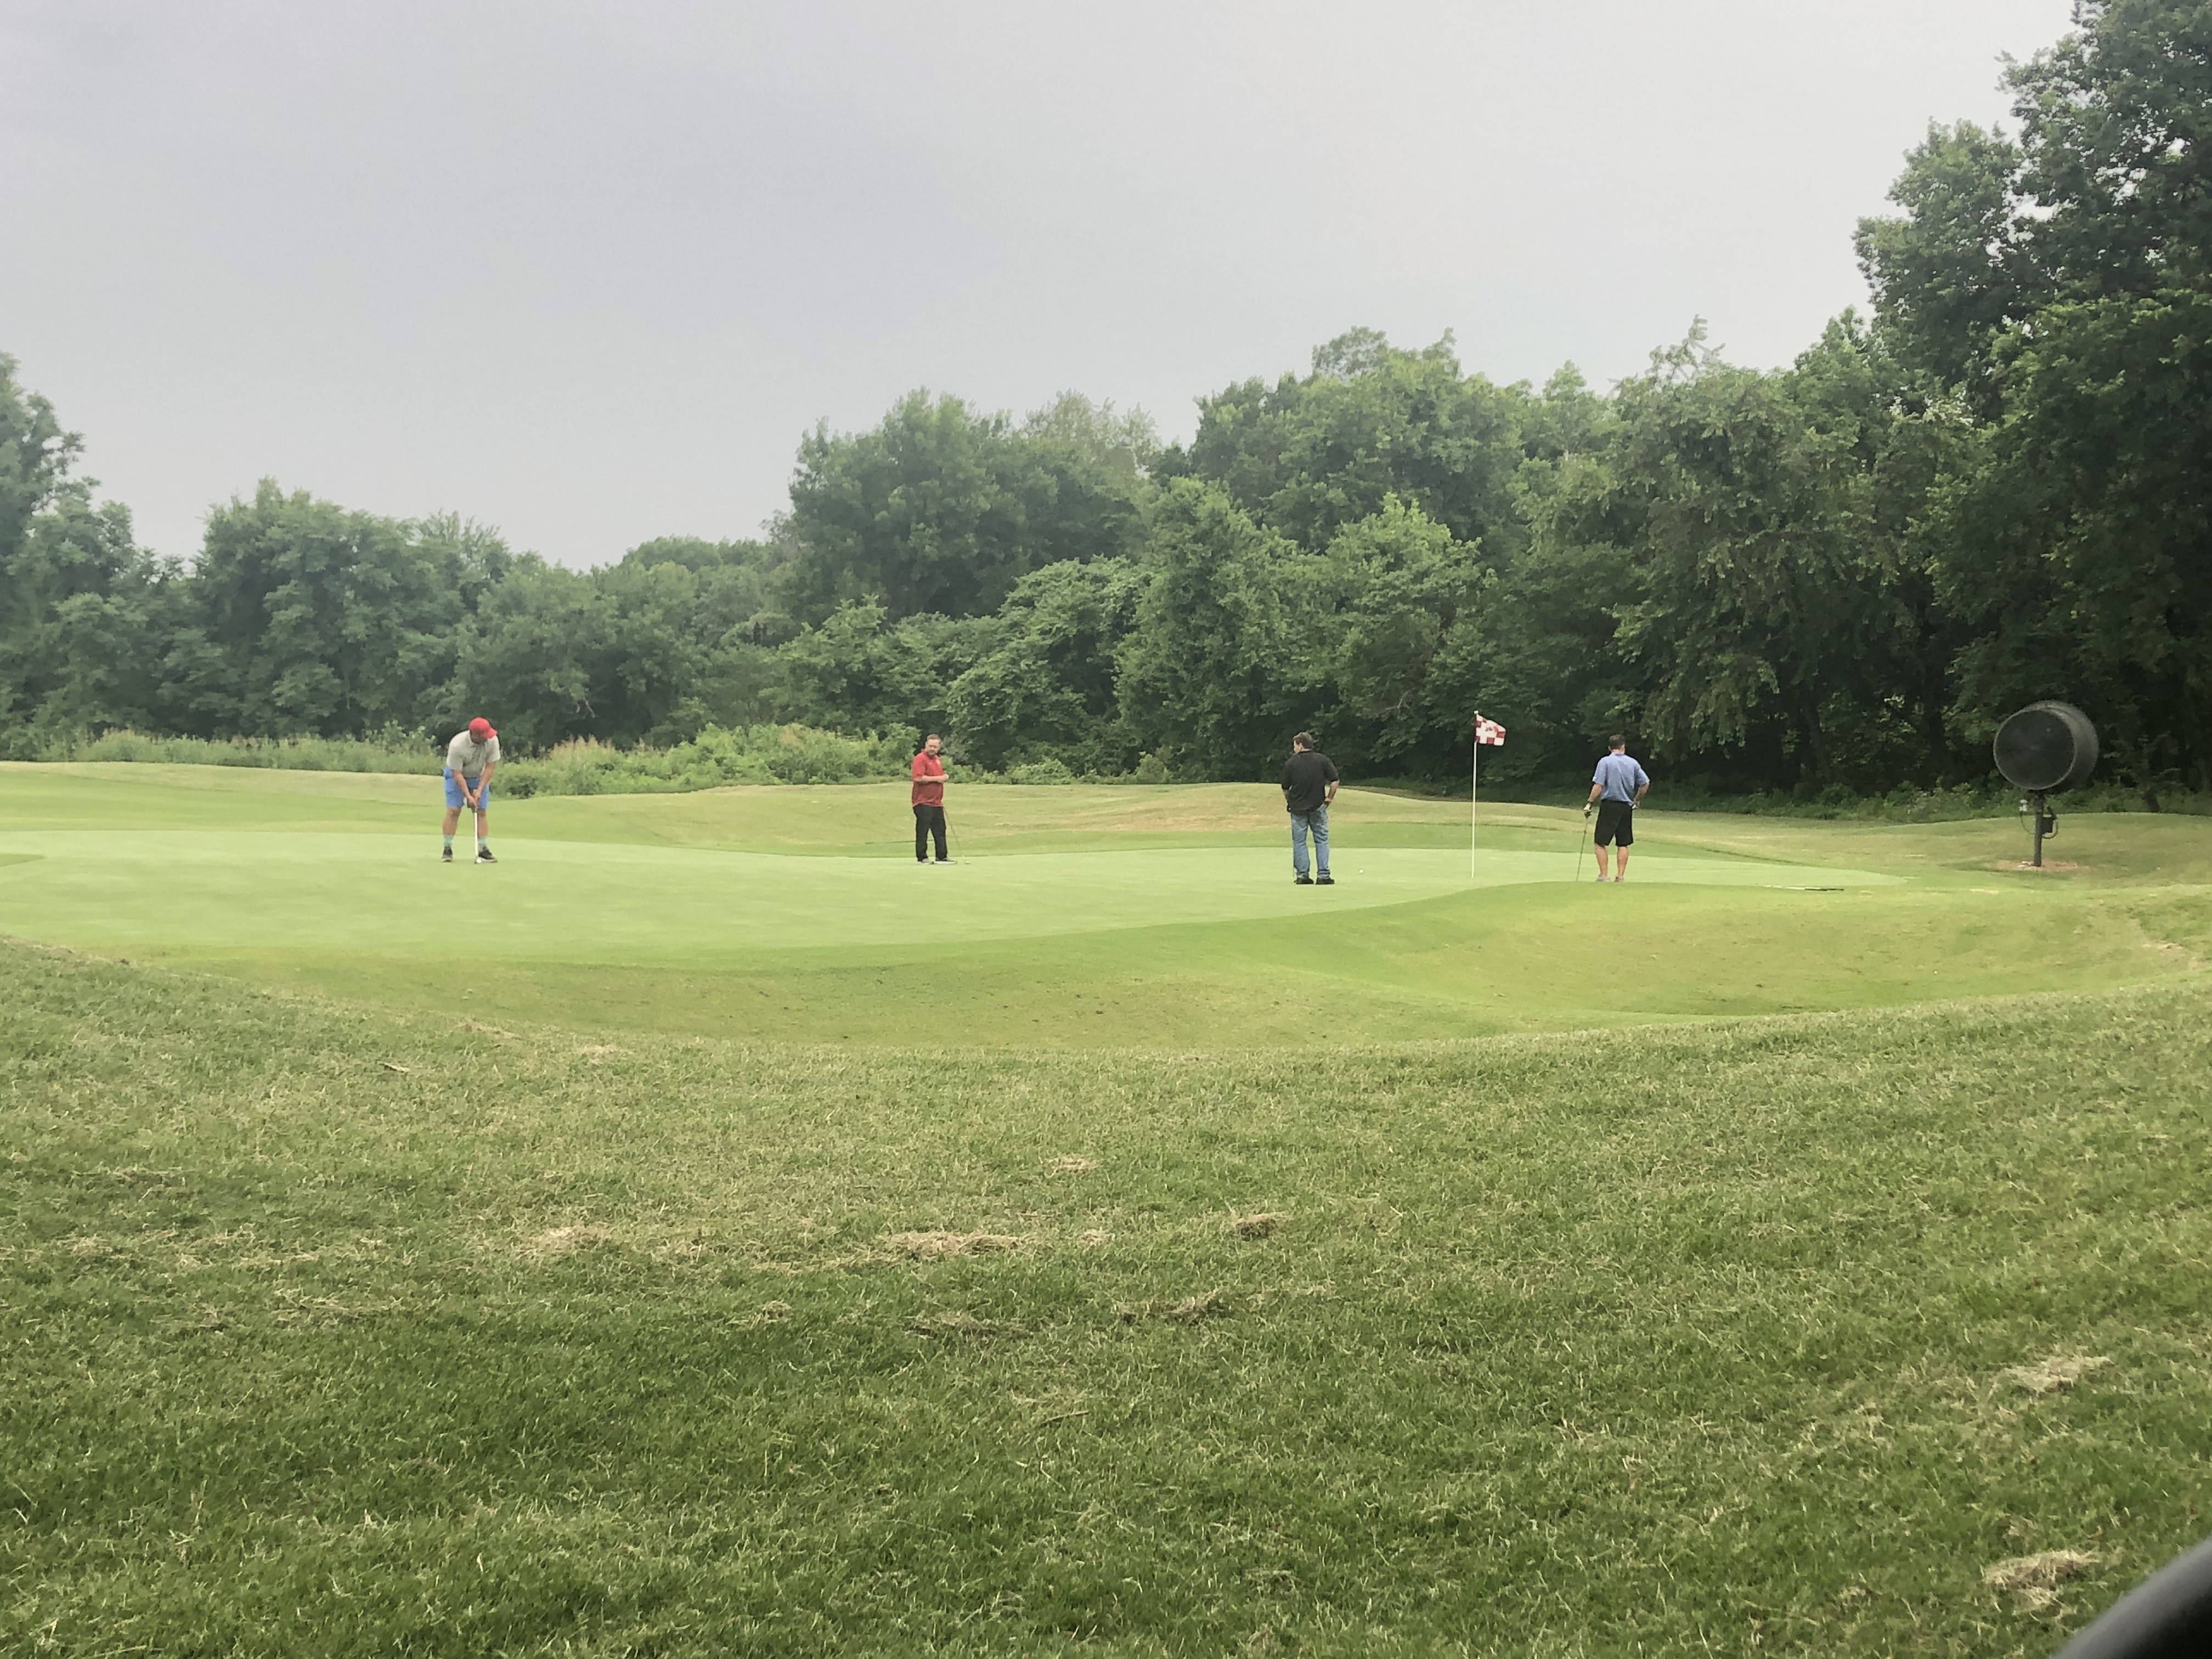 Golfers on a putting green